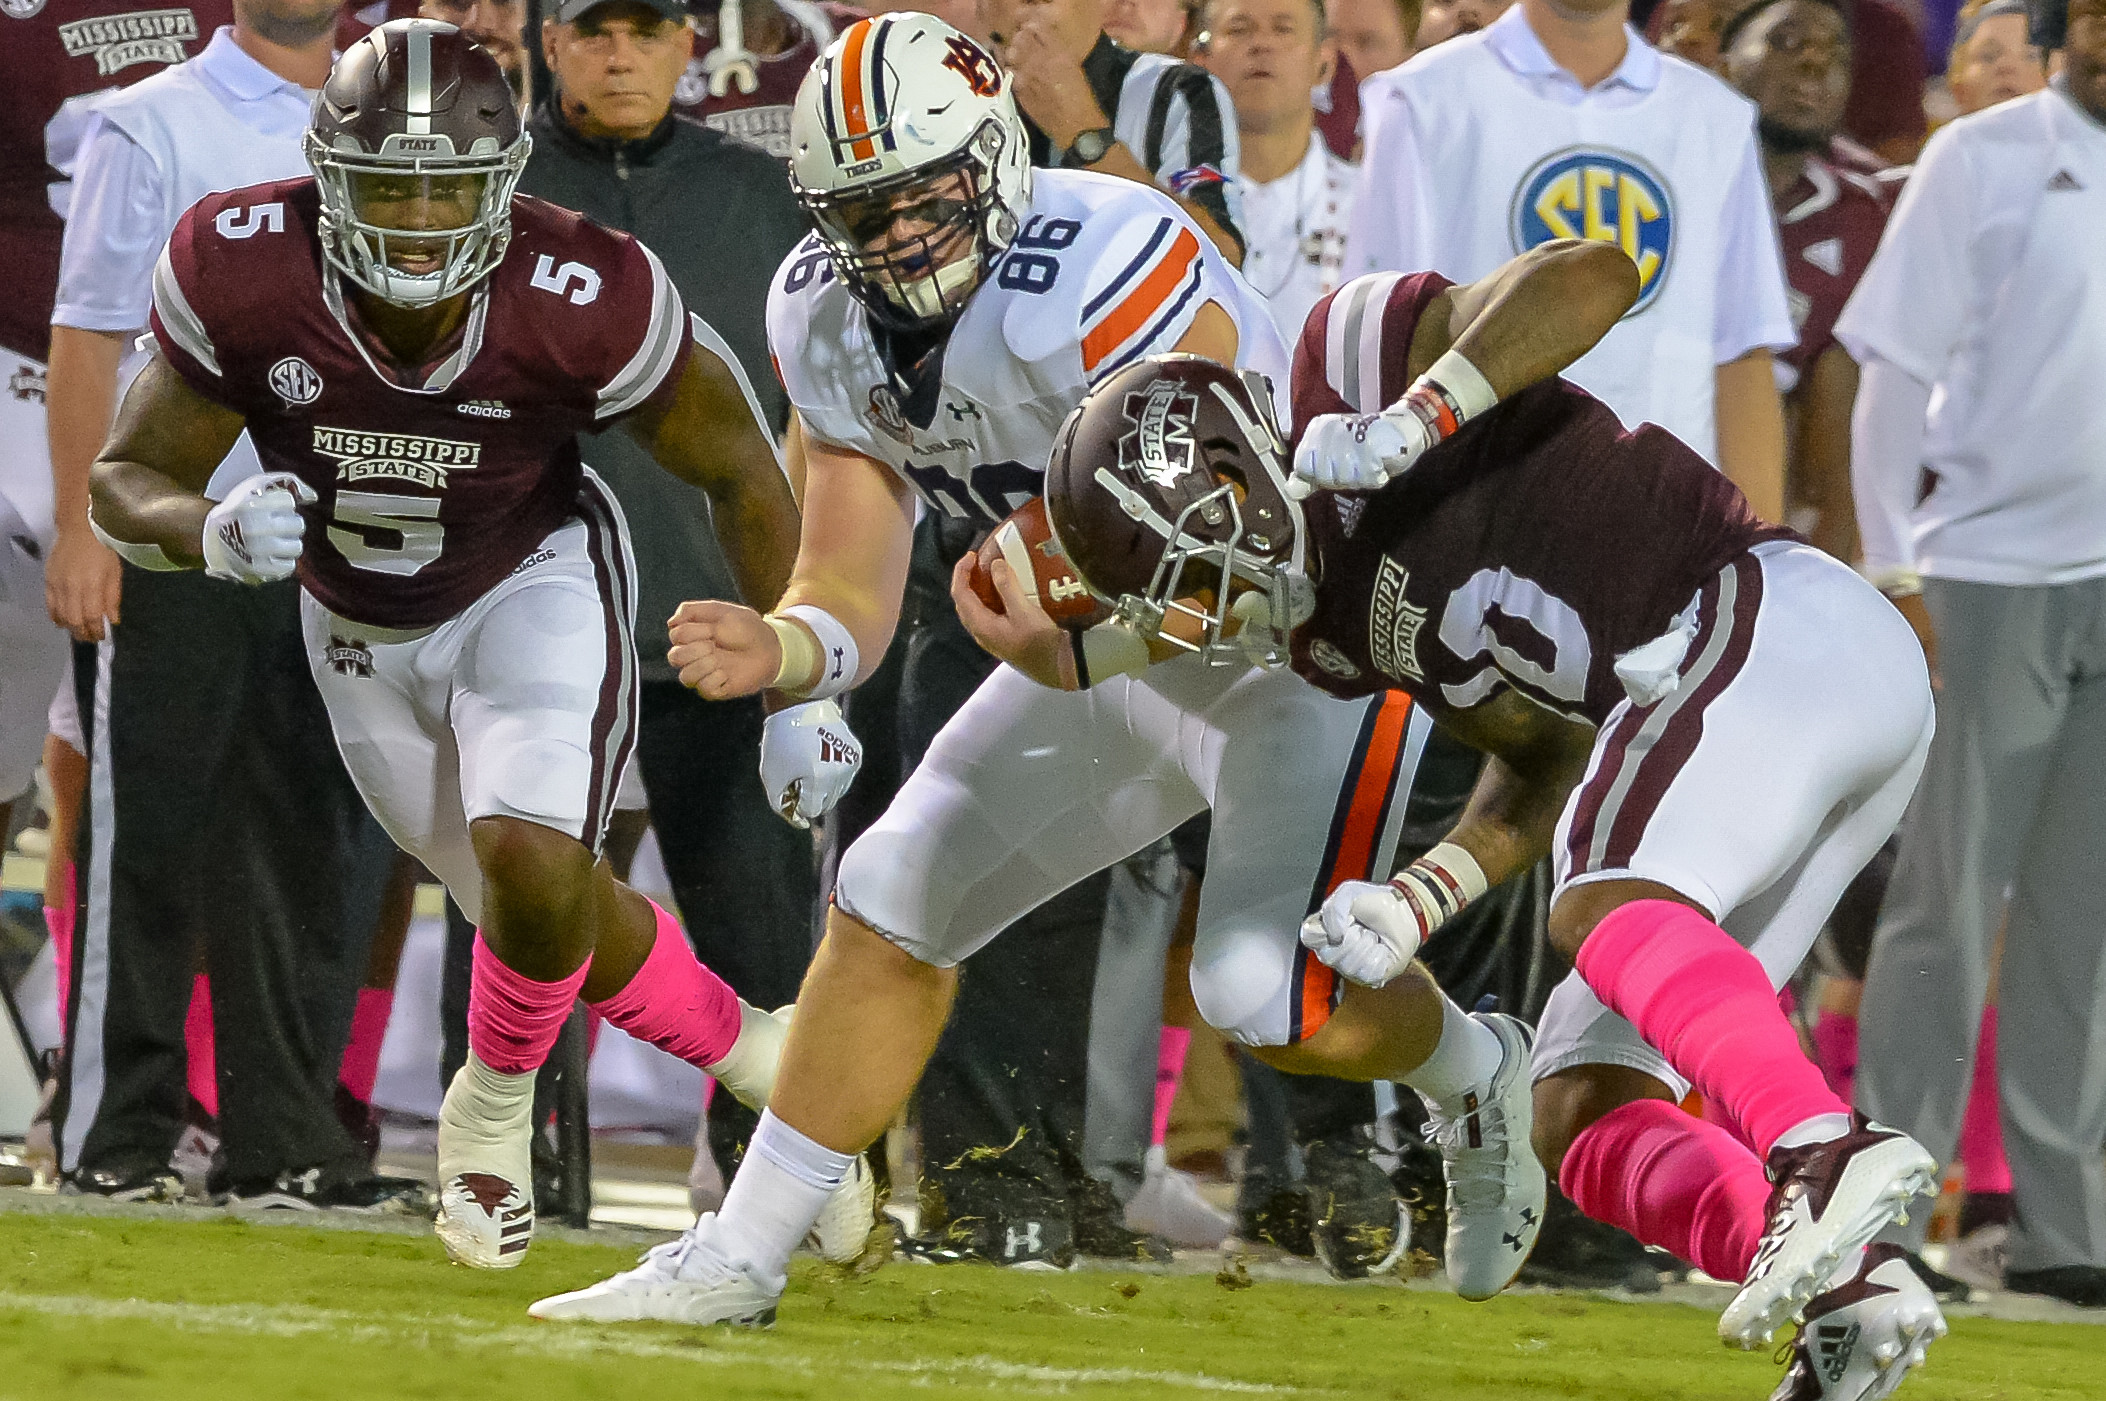 Auburn Tigers tight end Tucker Brown (86) is tackled by Mississippi State Bulldogs linebacker Leo Lewis (10) during the first half of Saturday's game, at Davis Wade Stadium in Starkville, MS. Daily Mountain Eagle -  Jeff Johnsey